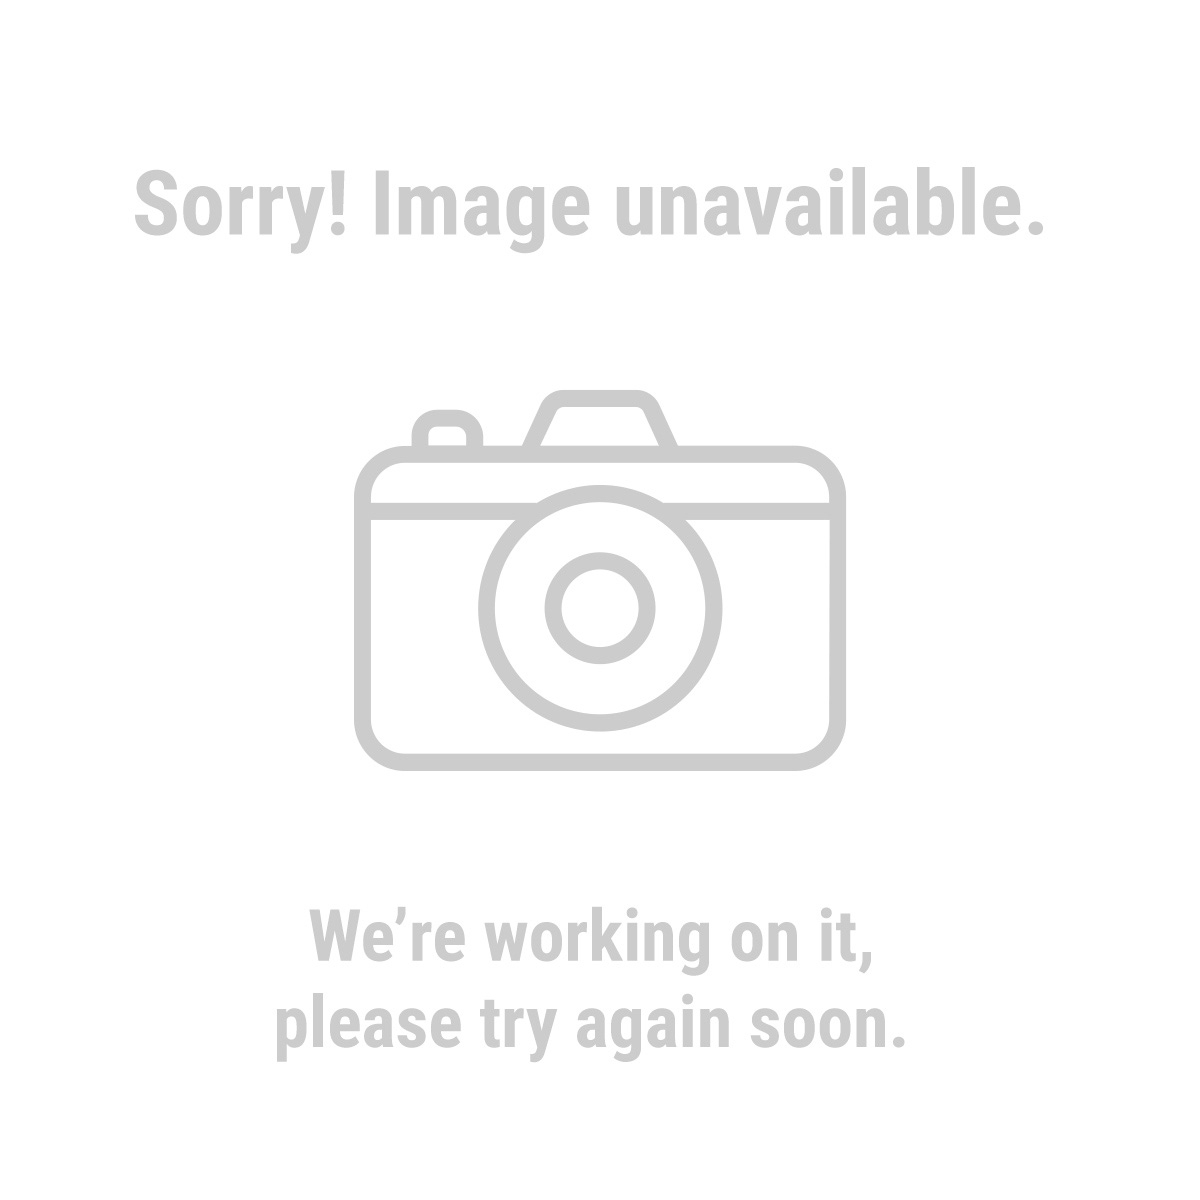 Storehouse 67653 300 Piece E-Clip Assortment